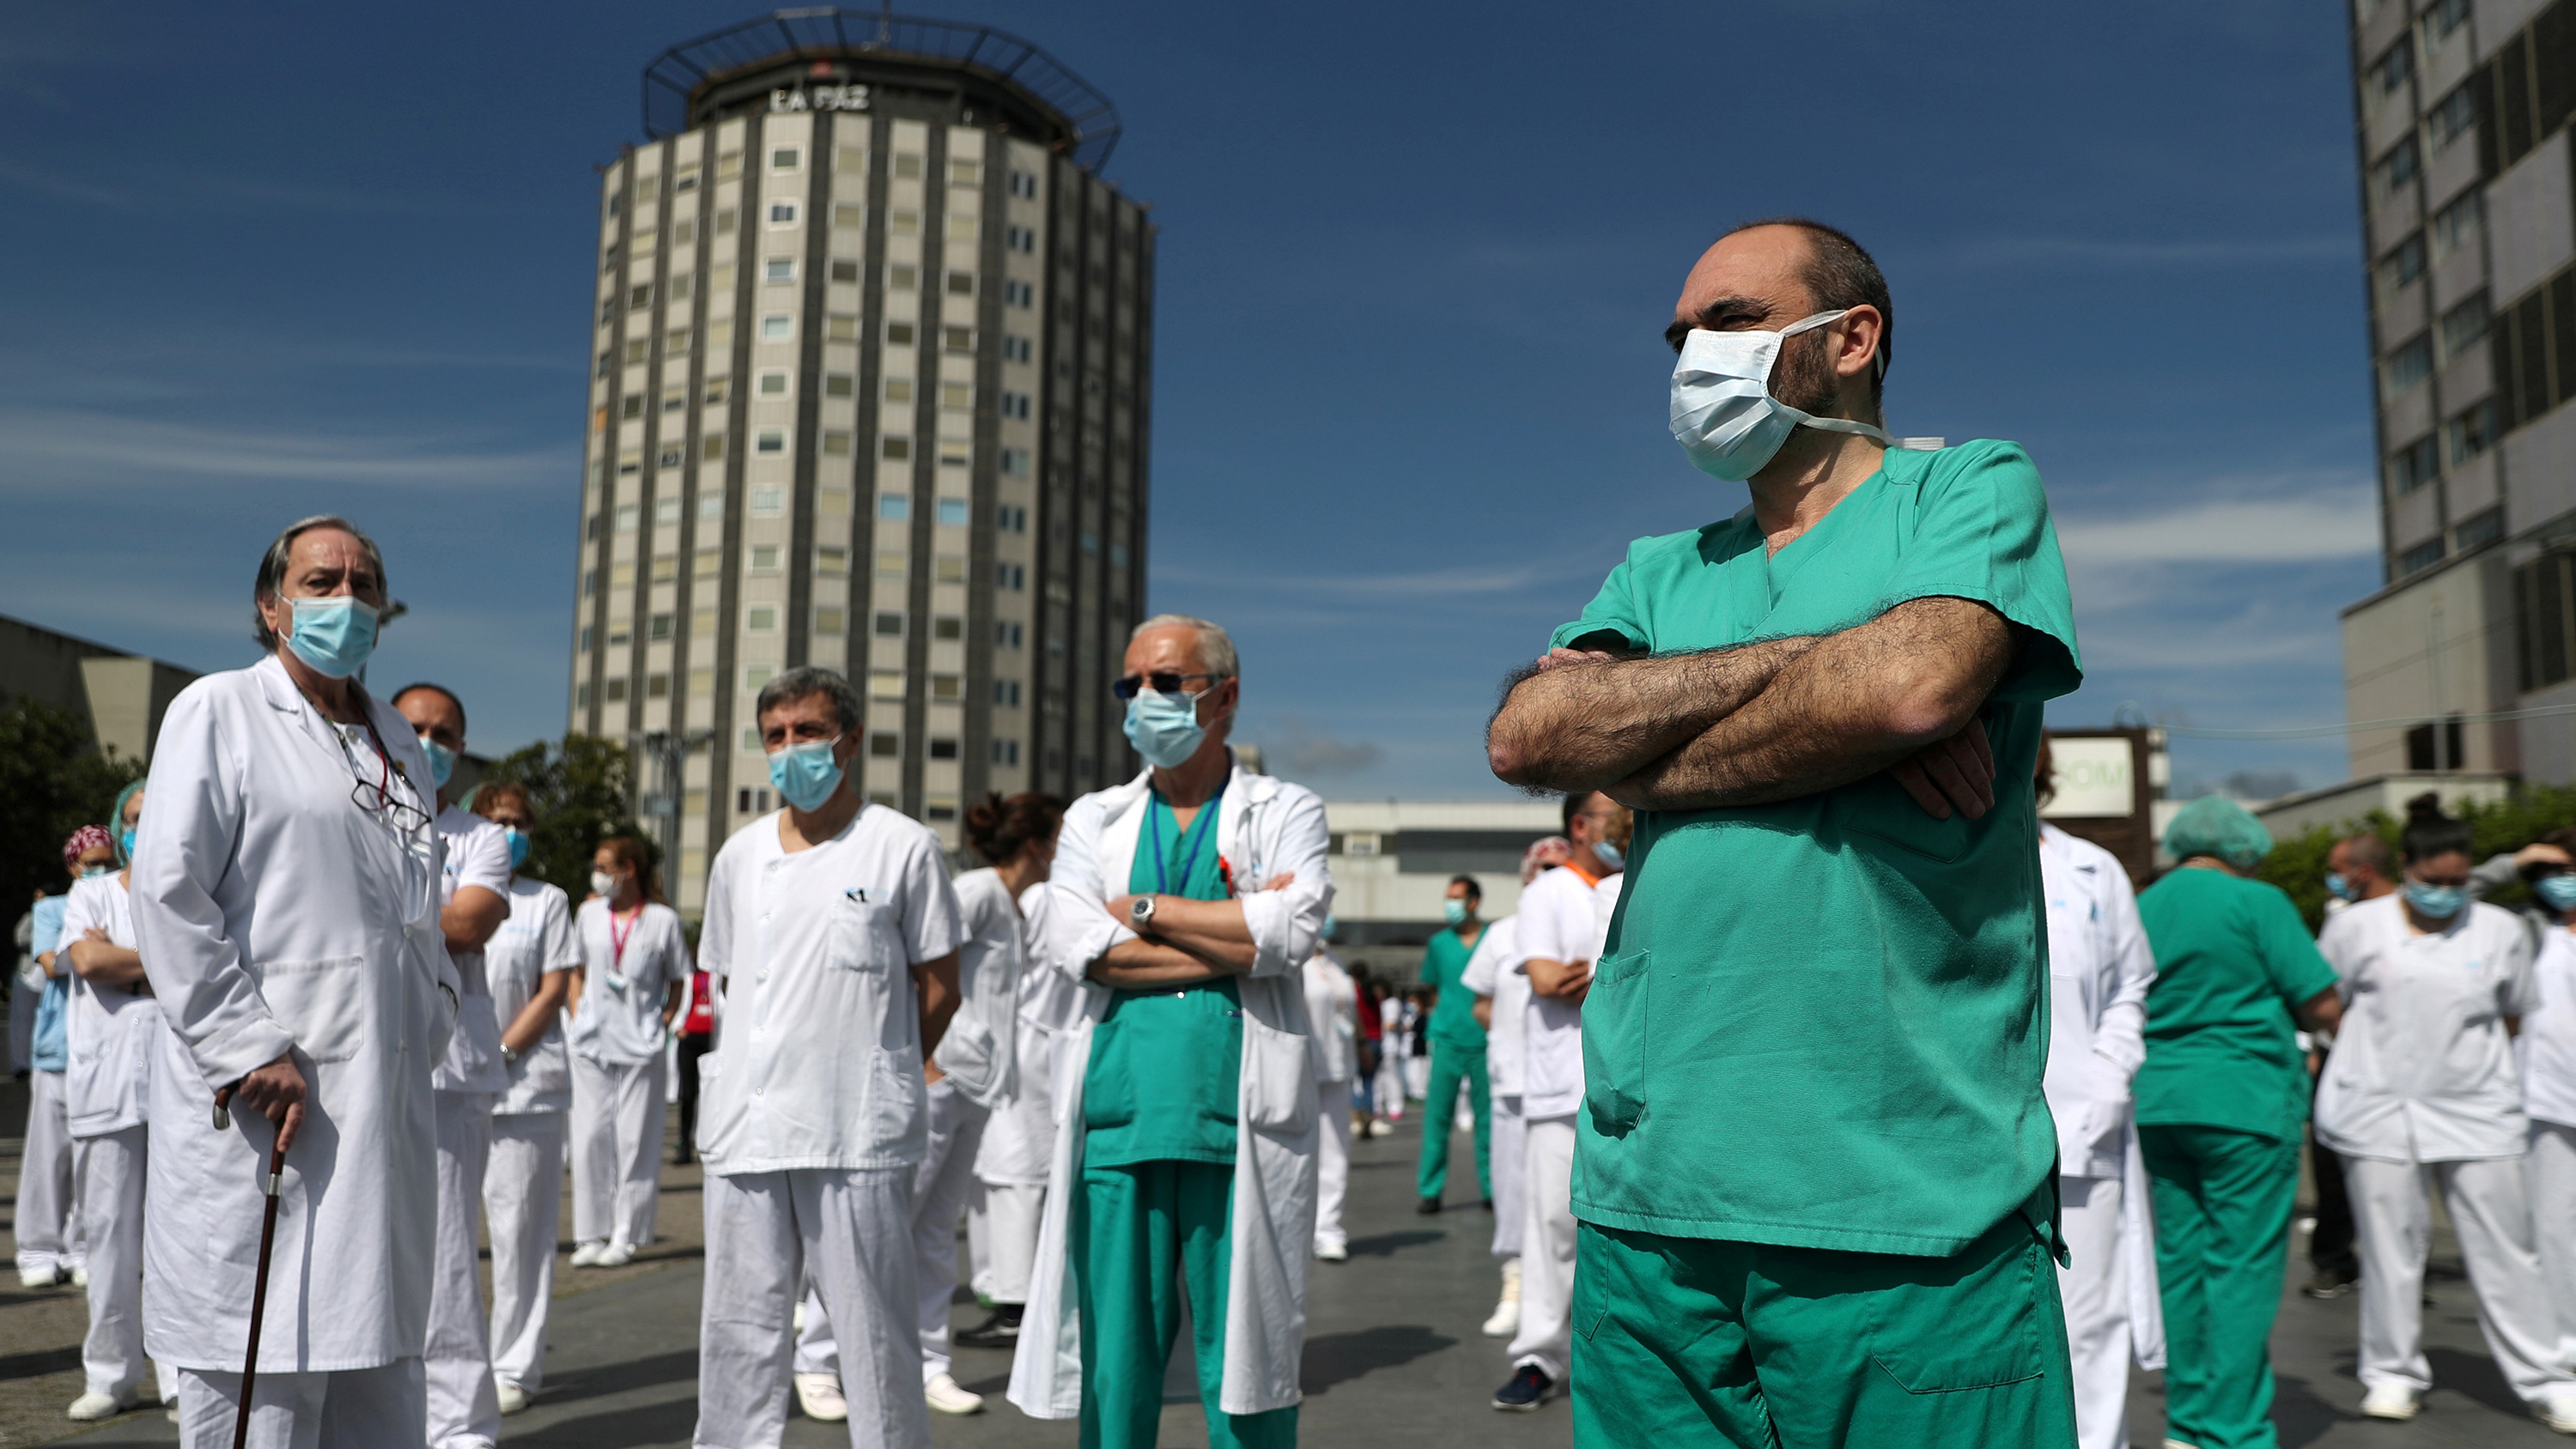 The photo shows a number of medical staff standing around in the bright, bright sunlight talking.